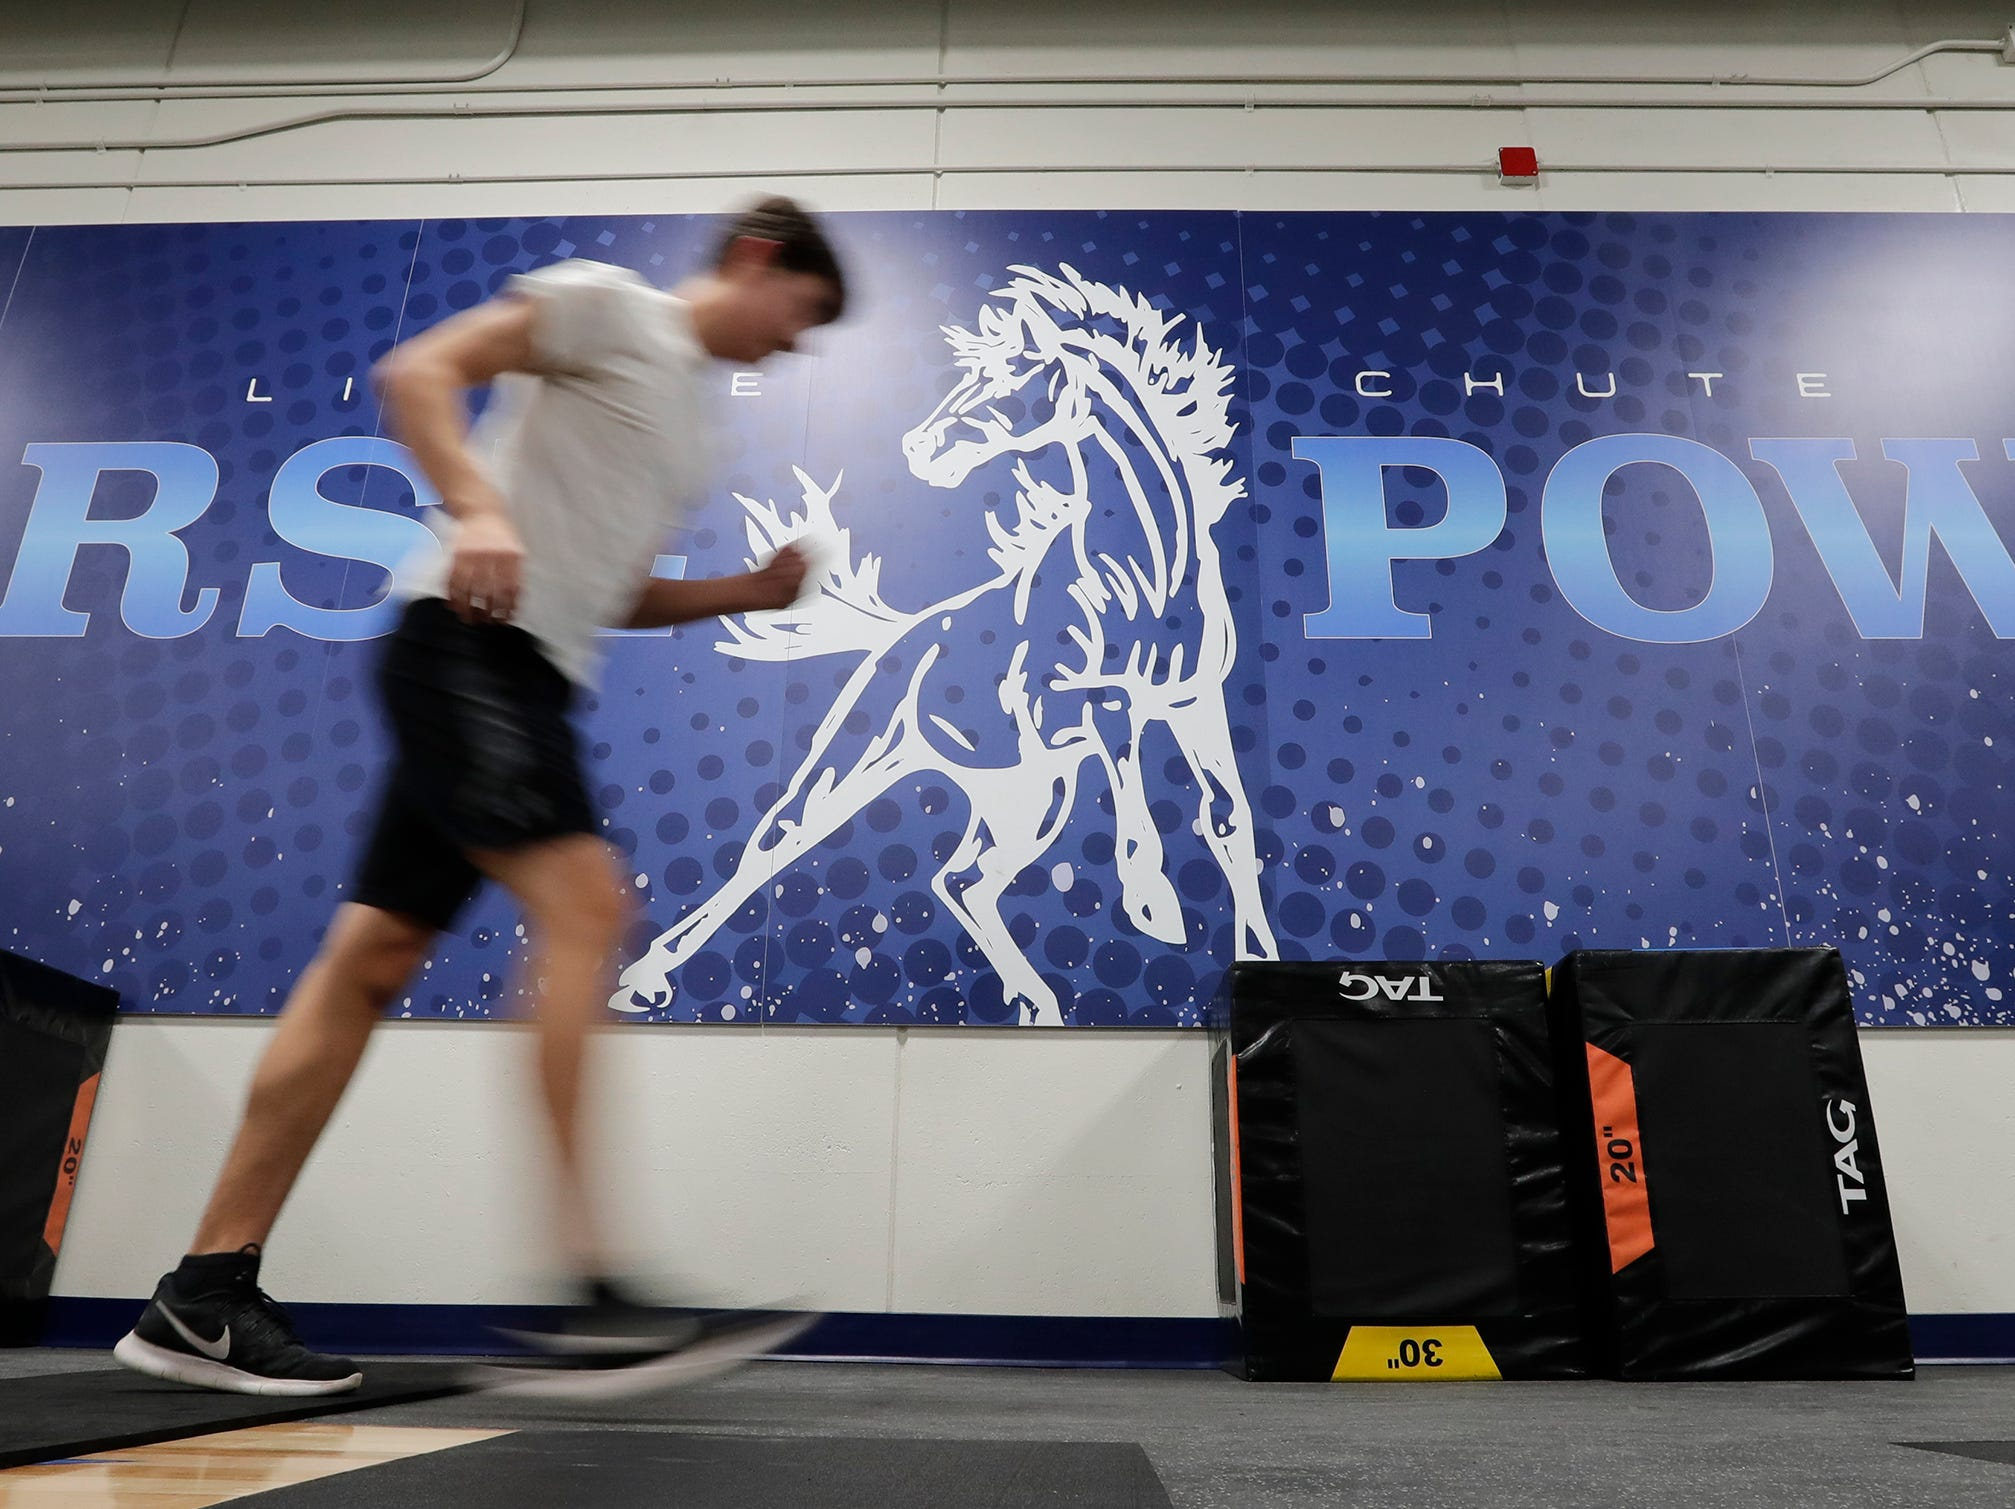 A student participates in the Intro to Strength and Conditioning class in the new fitness center at Little Chute High School Tuesday, November 6, 2018, in Little Chute, Wis. Dan Powers/USA TODAY NETWORK-Wisconsin